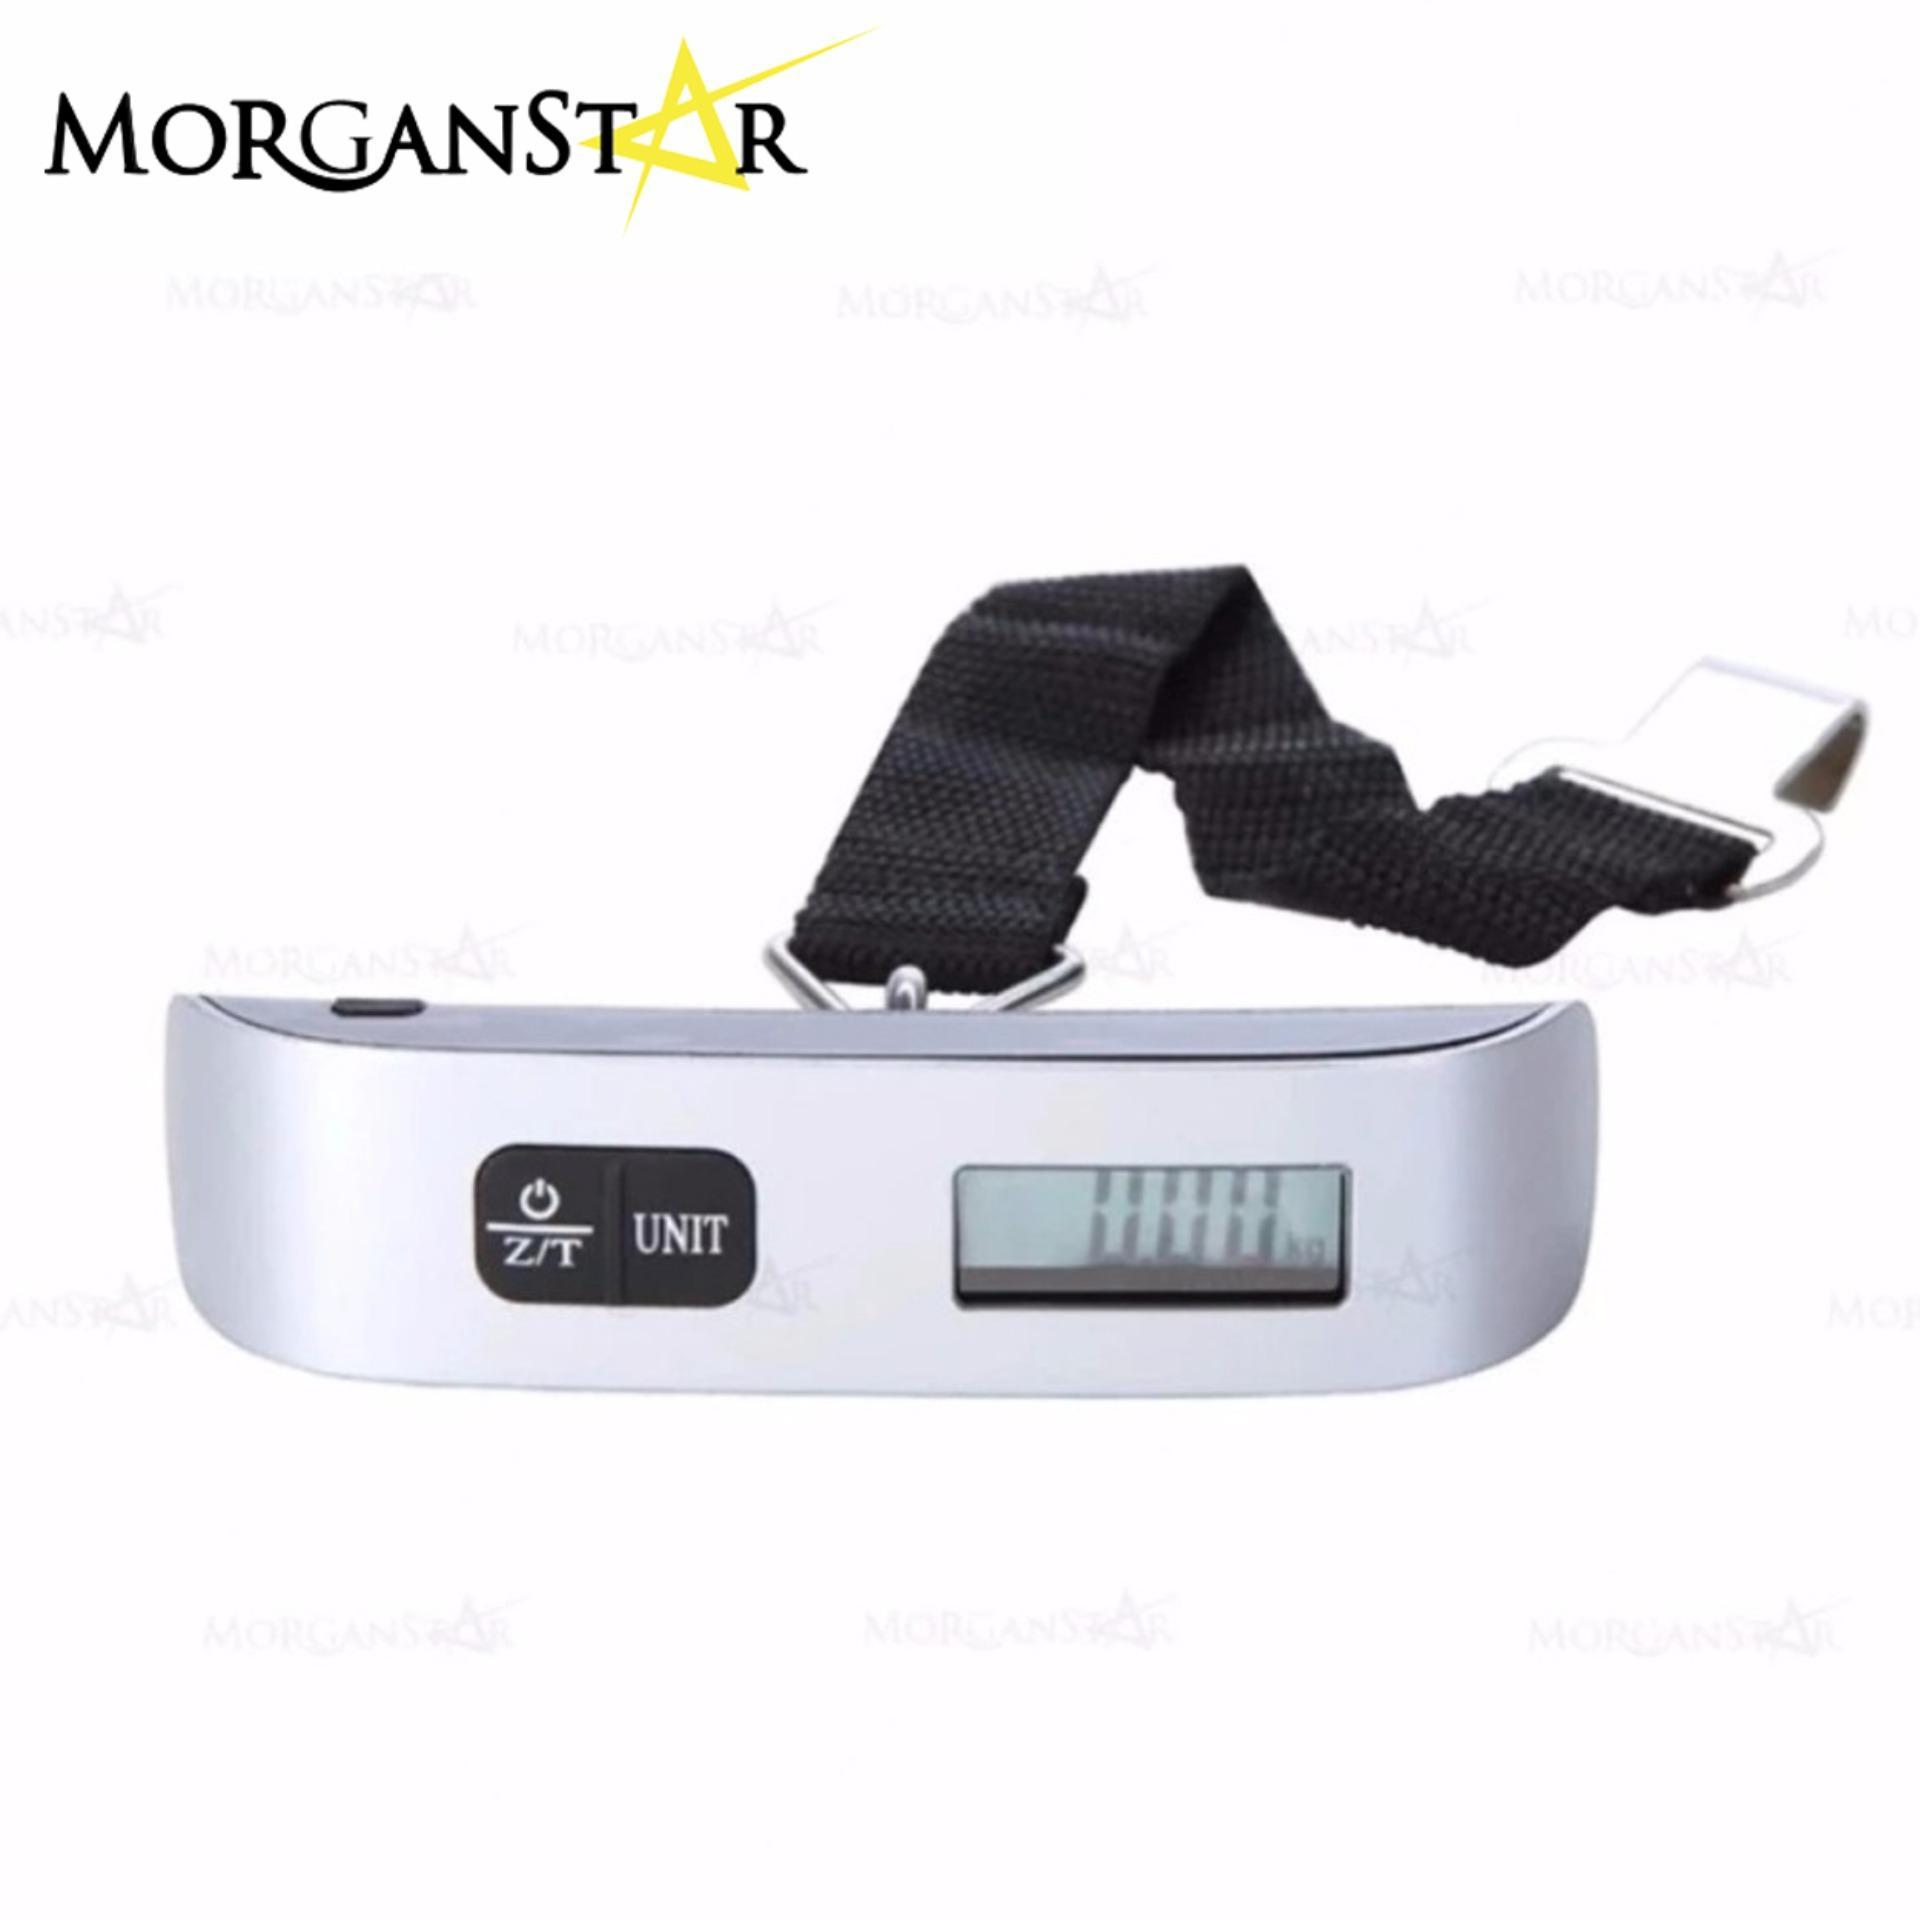 50 Kg/110lb Portable Electronic Luggage Scale (silver) By Morganstar Marketing.